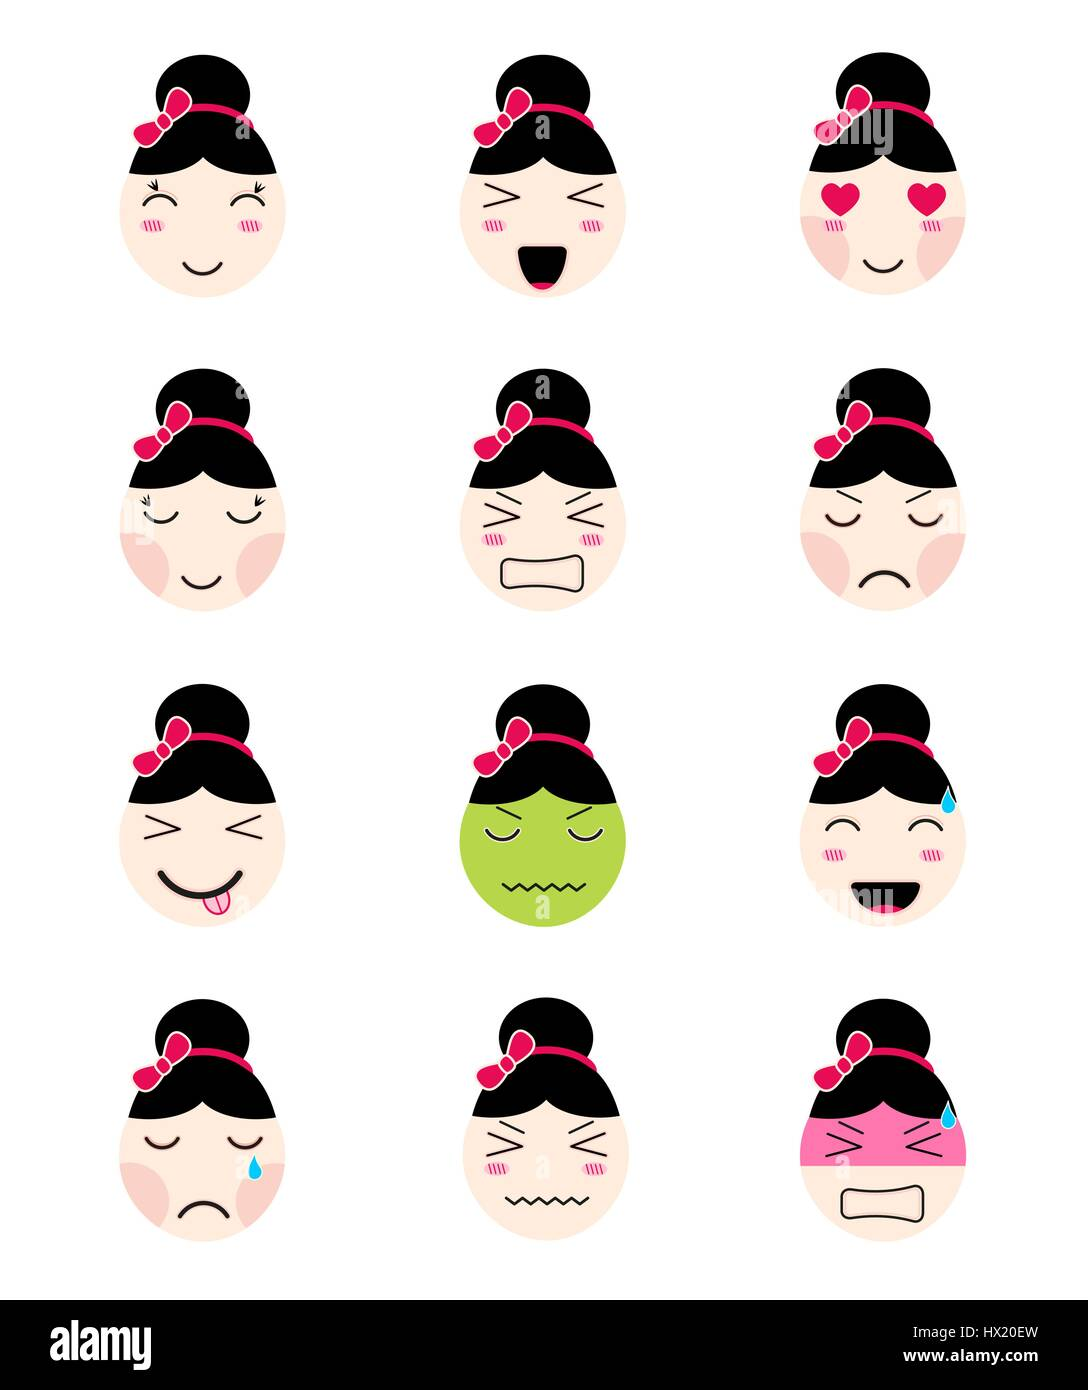 cute emoji collection kawaii asian girl face different moods